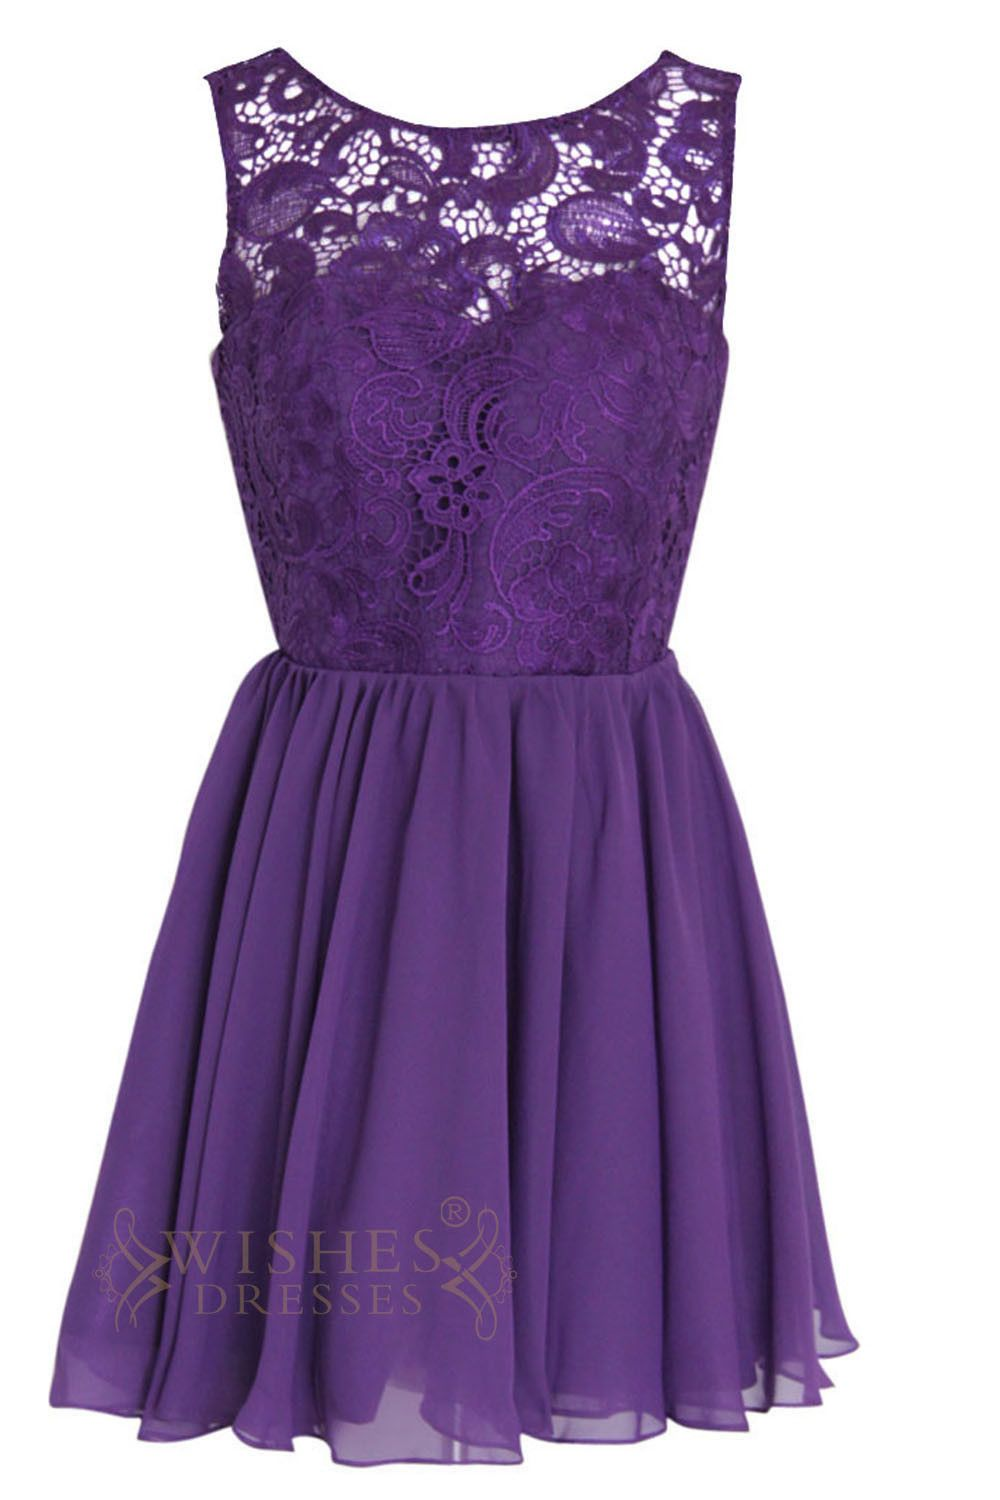 A-line Illusion Lace top Purple Bridesmaid Dresses Am113 | Morado ...